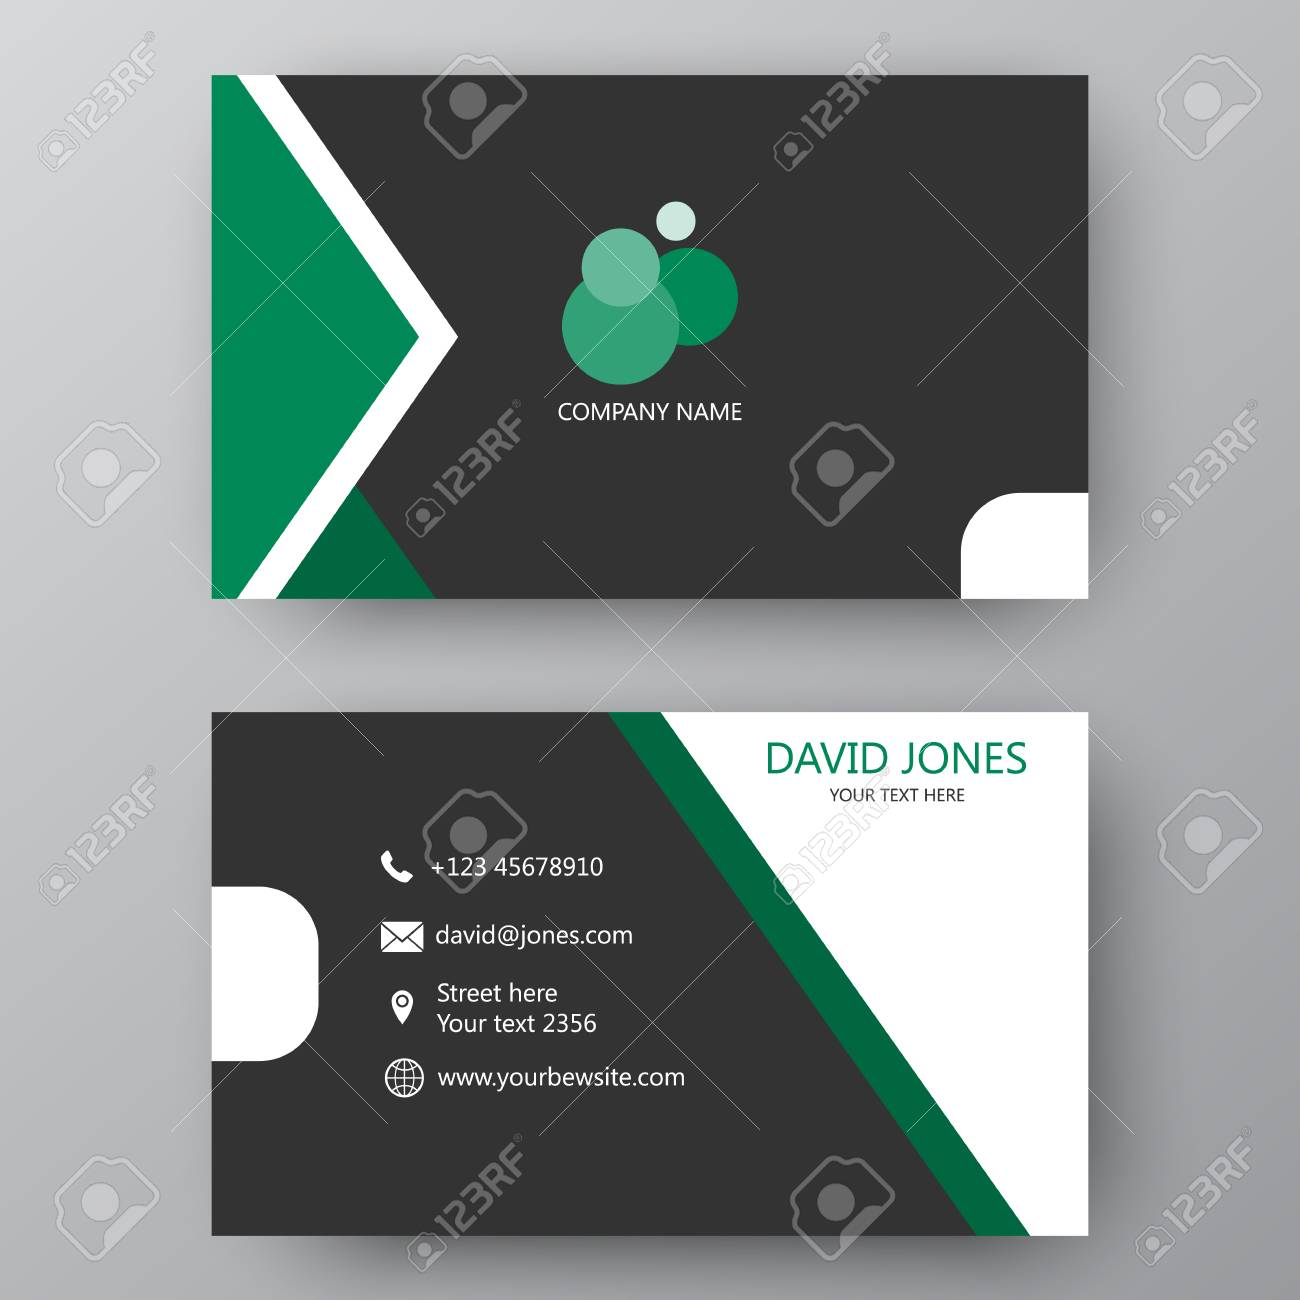 Vector business card template visiting card for business and vector vector business card template visiting card for business and personal use modern presentation card with company logo vector illustration design flashek Gallery